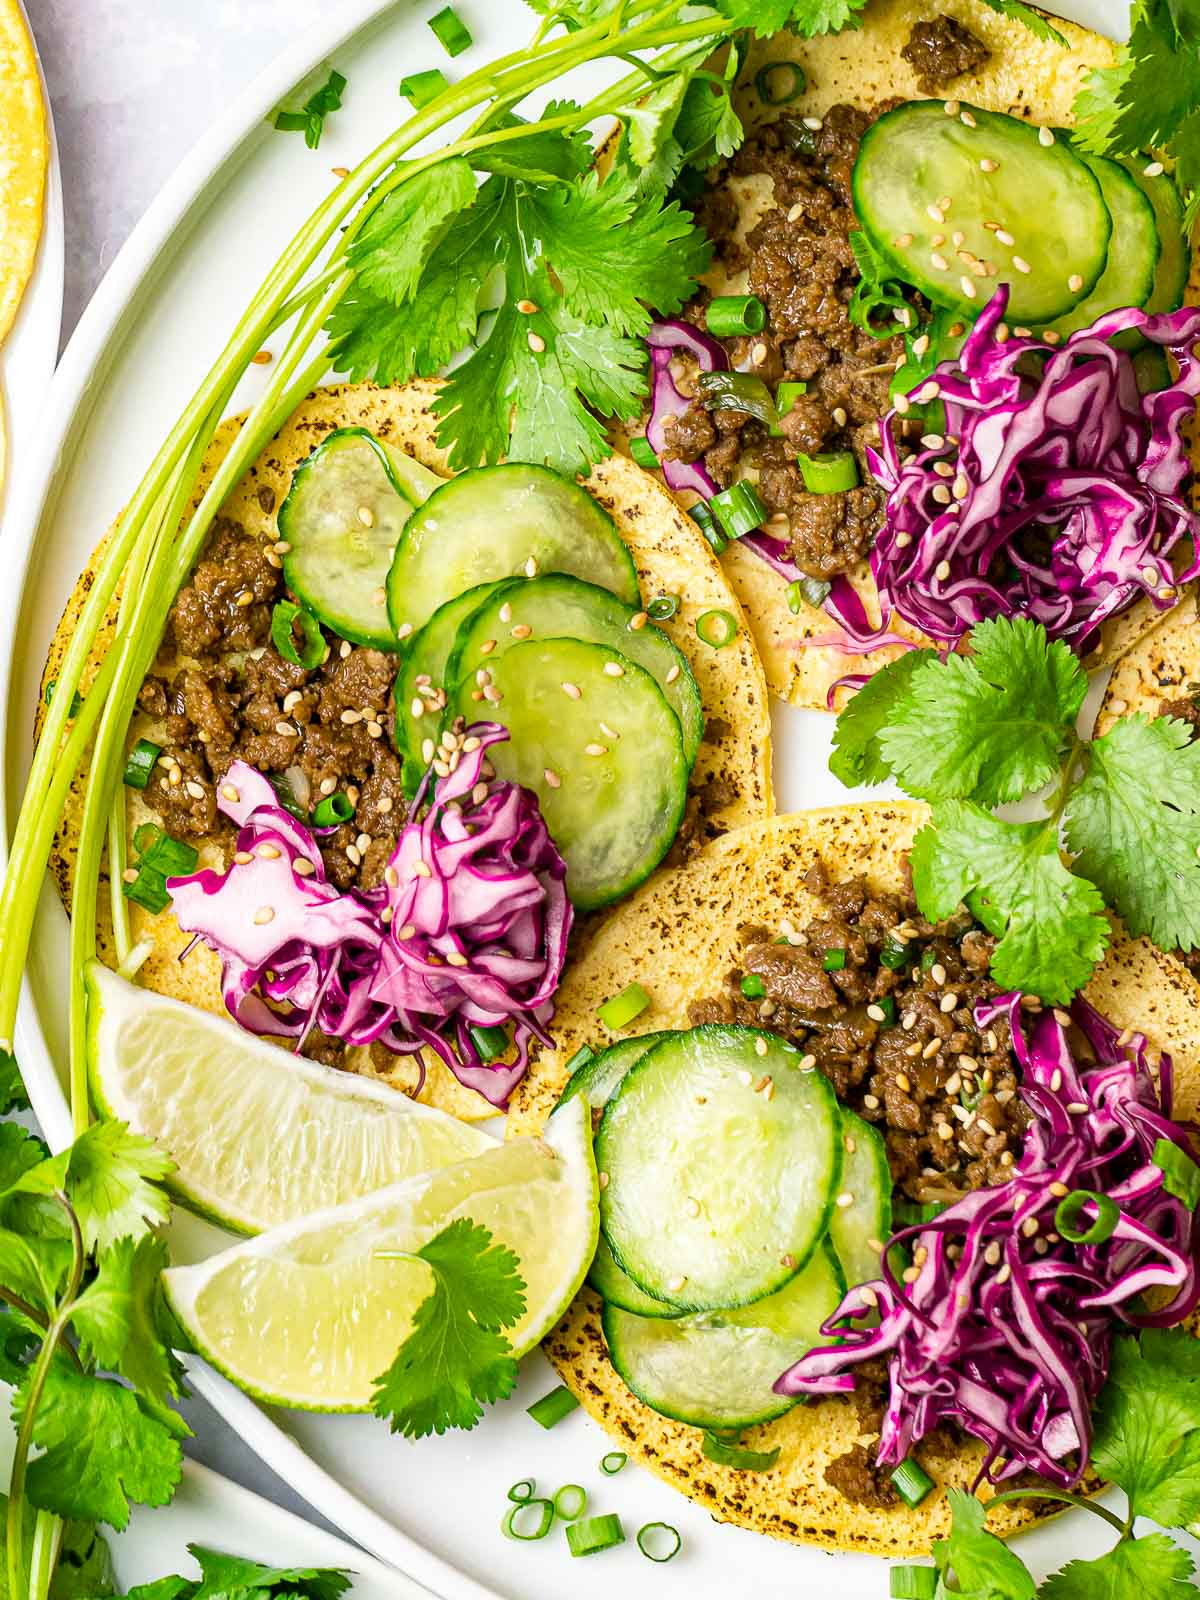 Korean beef bulgogi tacos with cabbage slaw, lime, and pickled cucumbers on a white plate